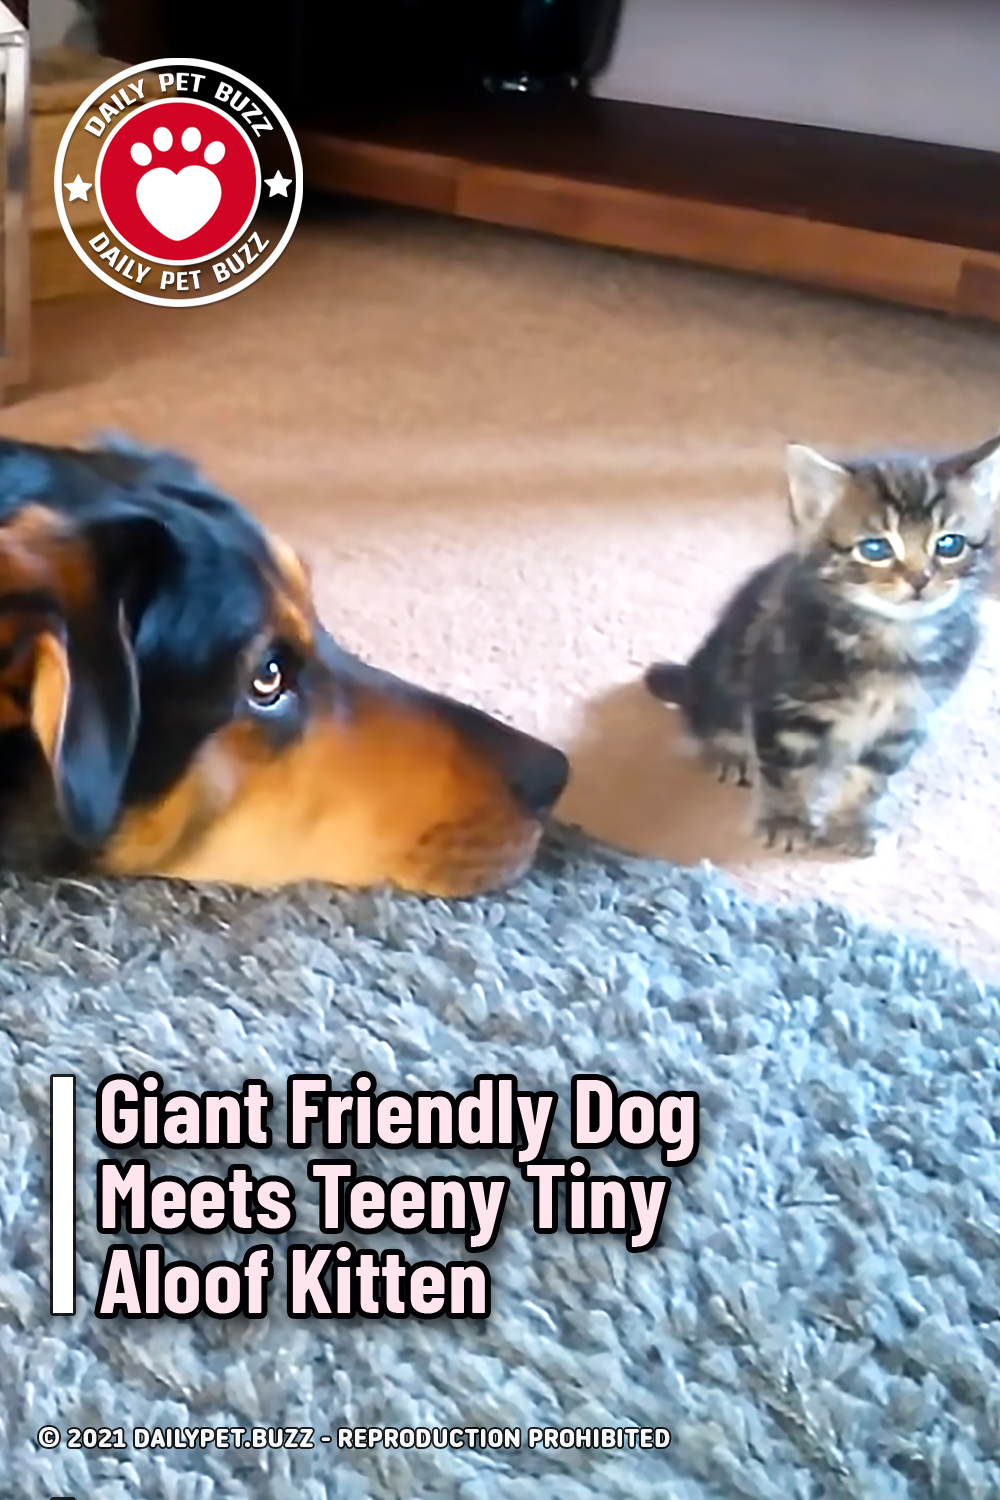 Giant Friendly Dog Meets Teeny Tiny Aloof Kitten